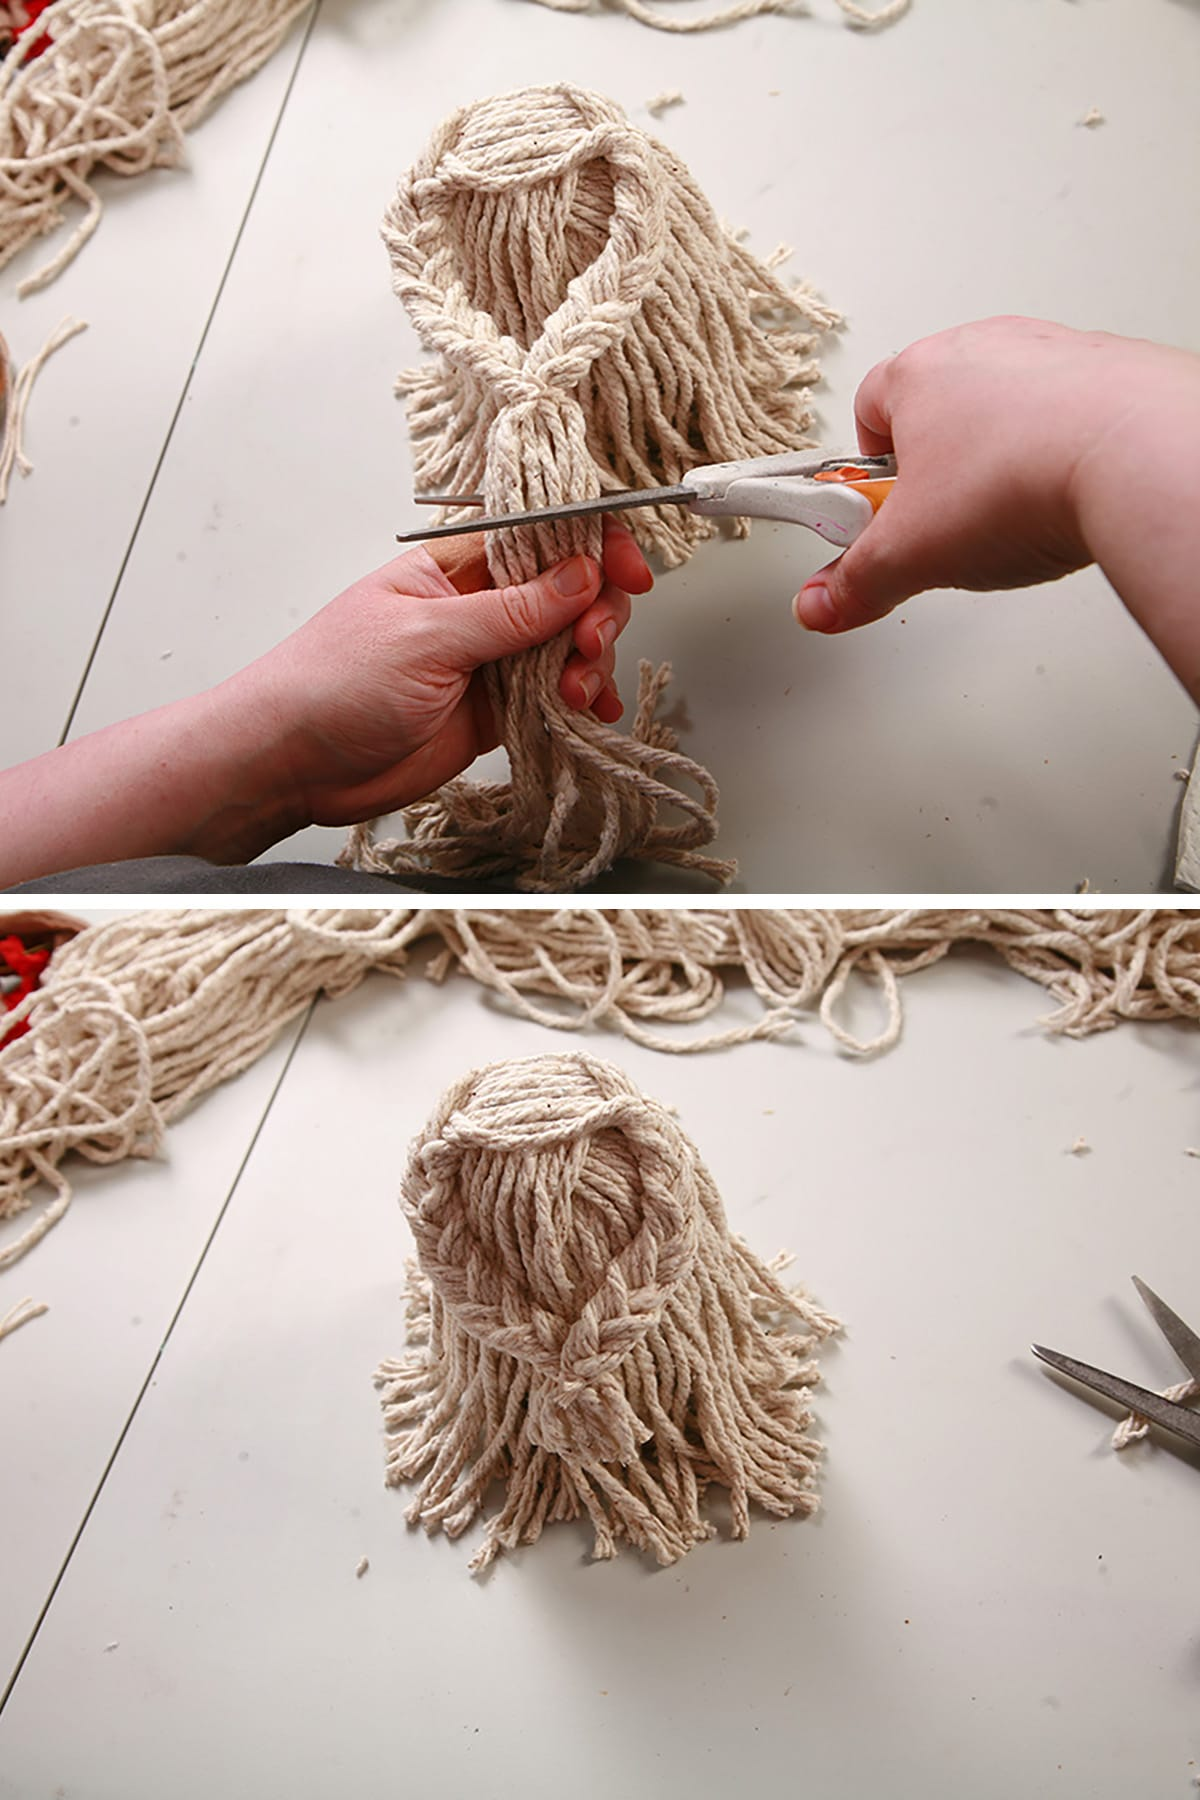 Ends of the braids being trimmed to form hands.